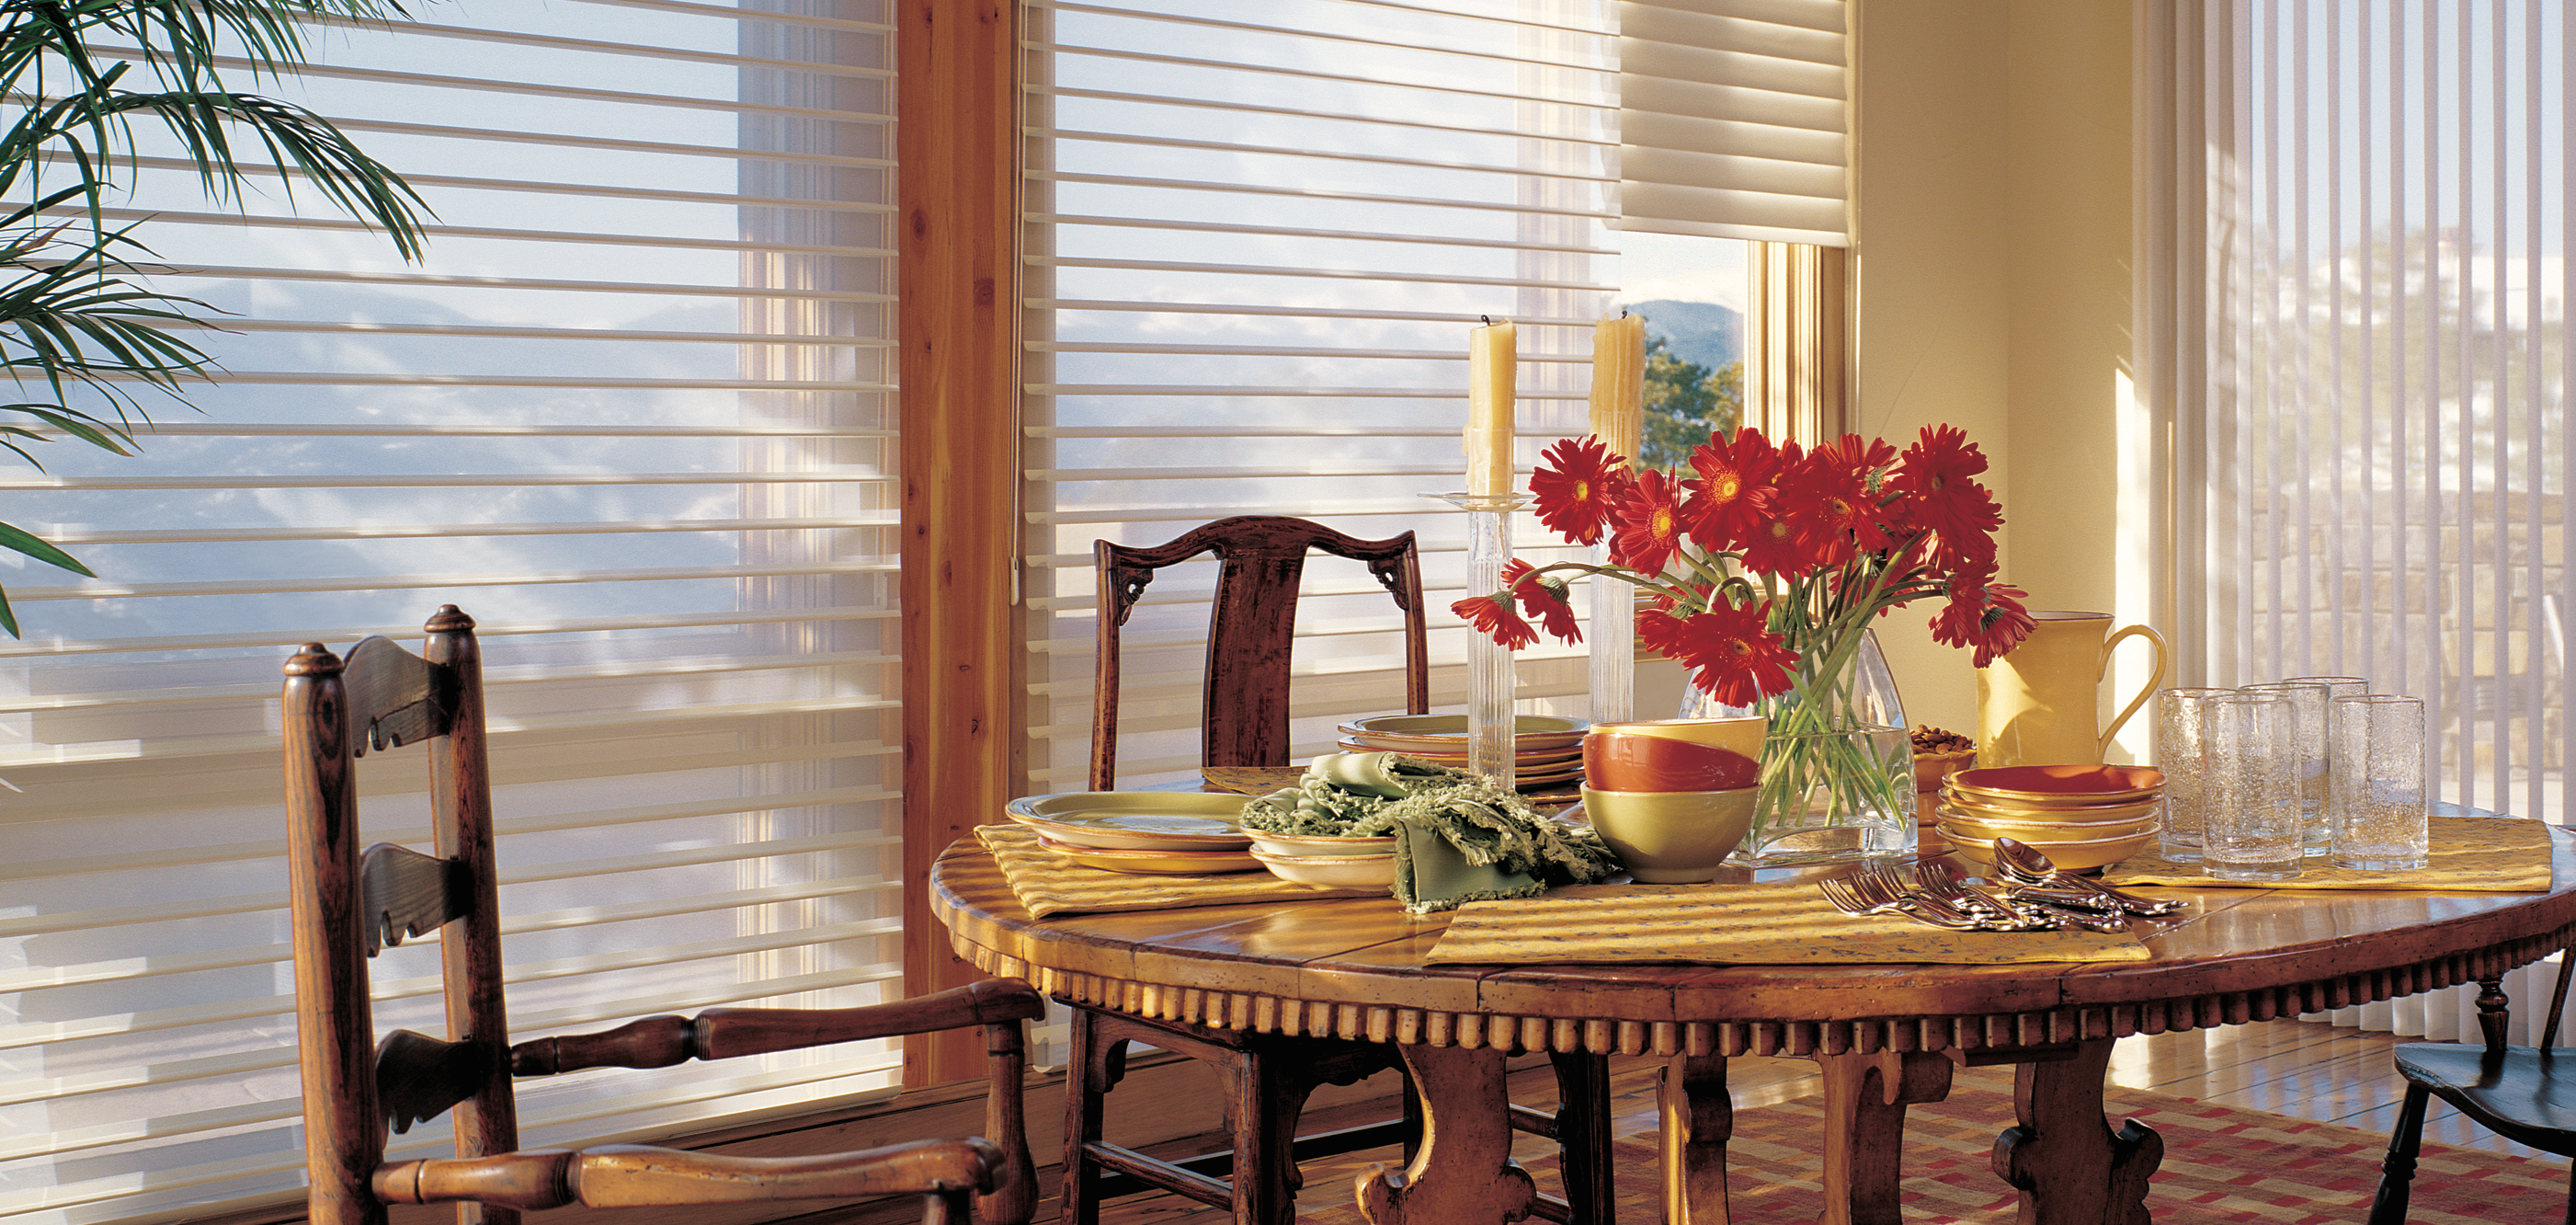 Tremendous Options For Custom Window Treatments Timan